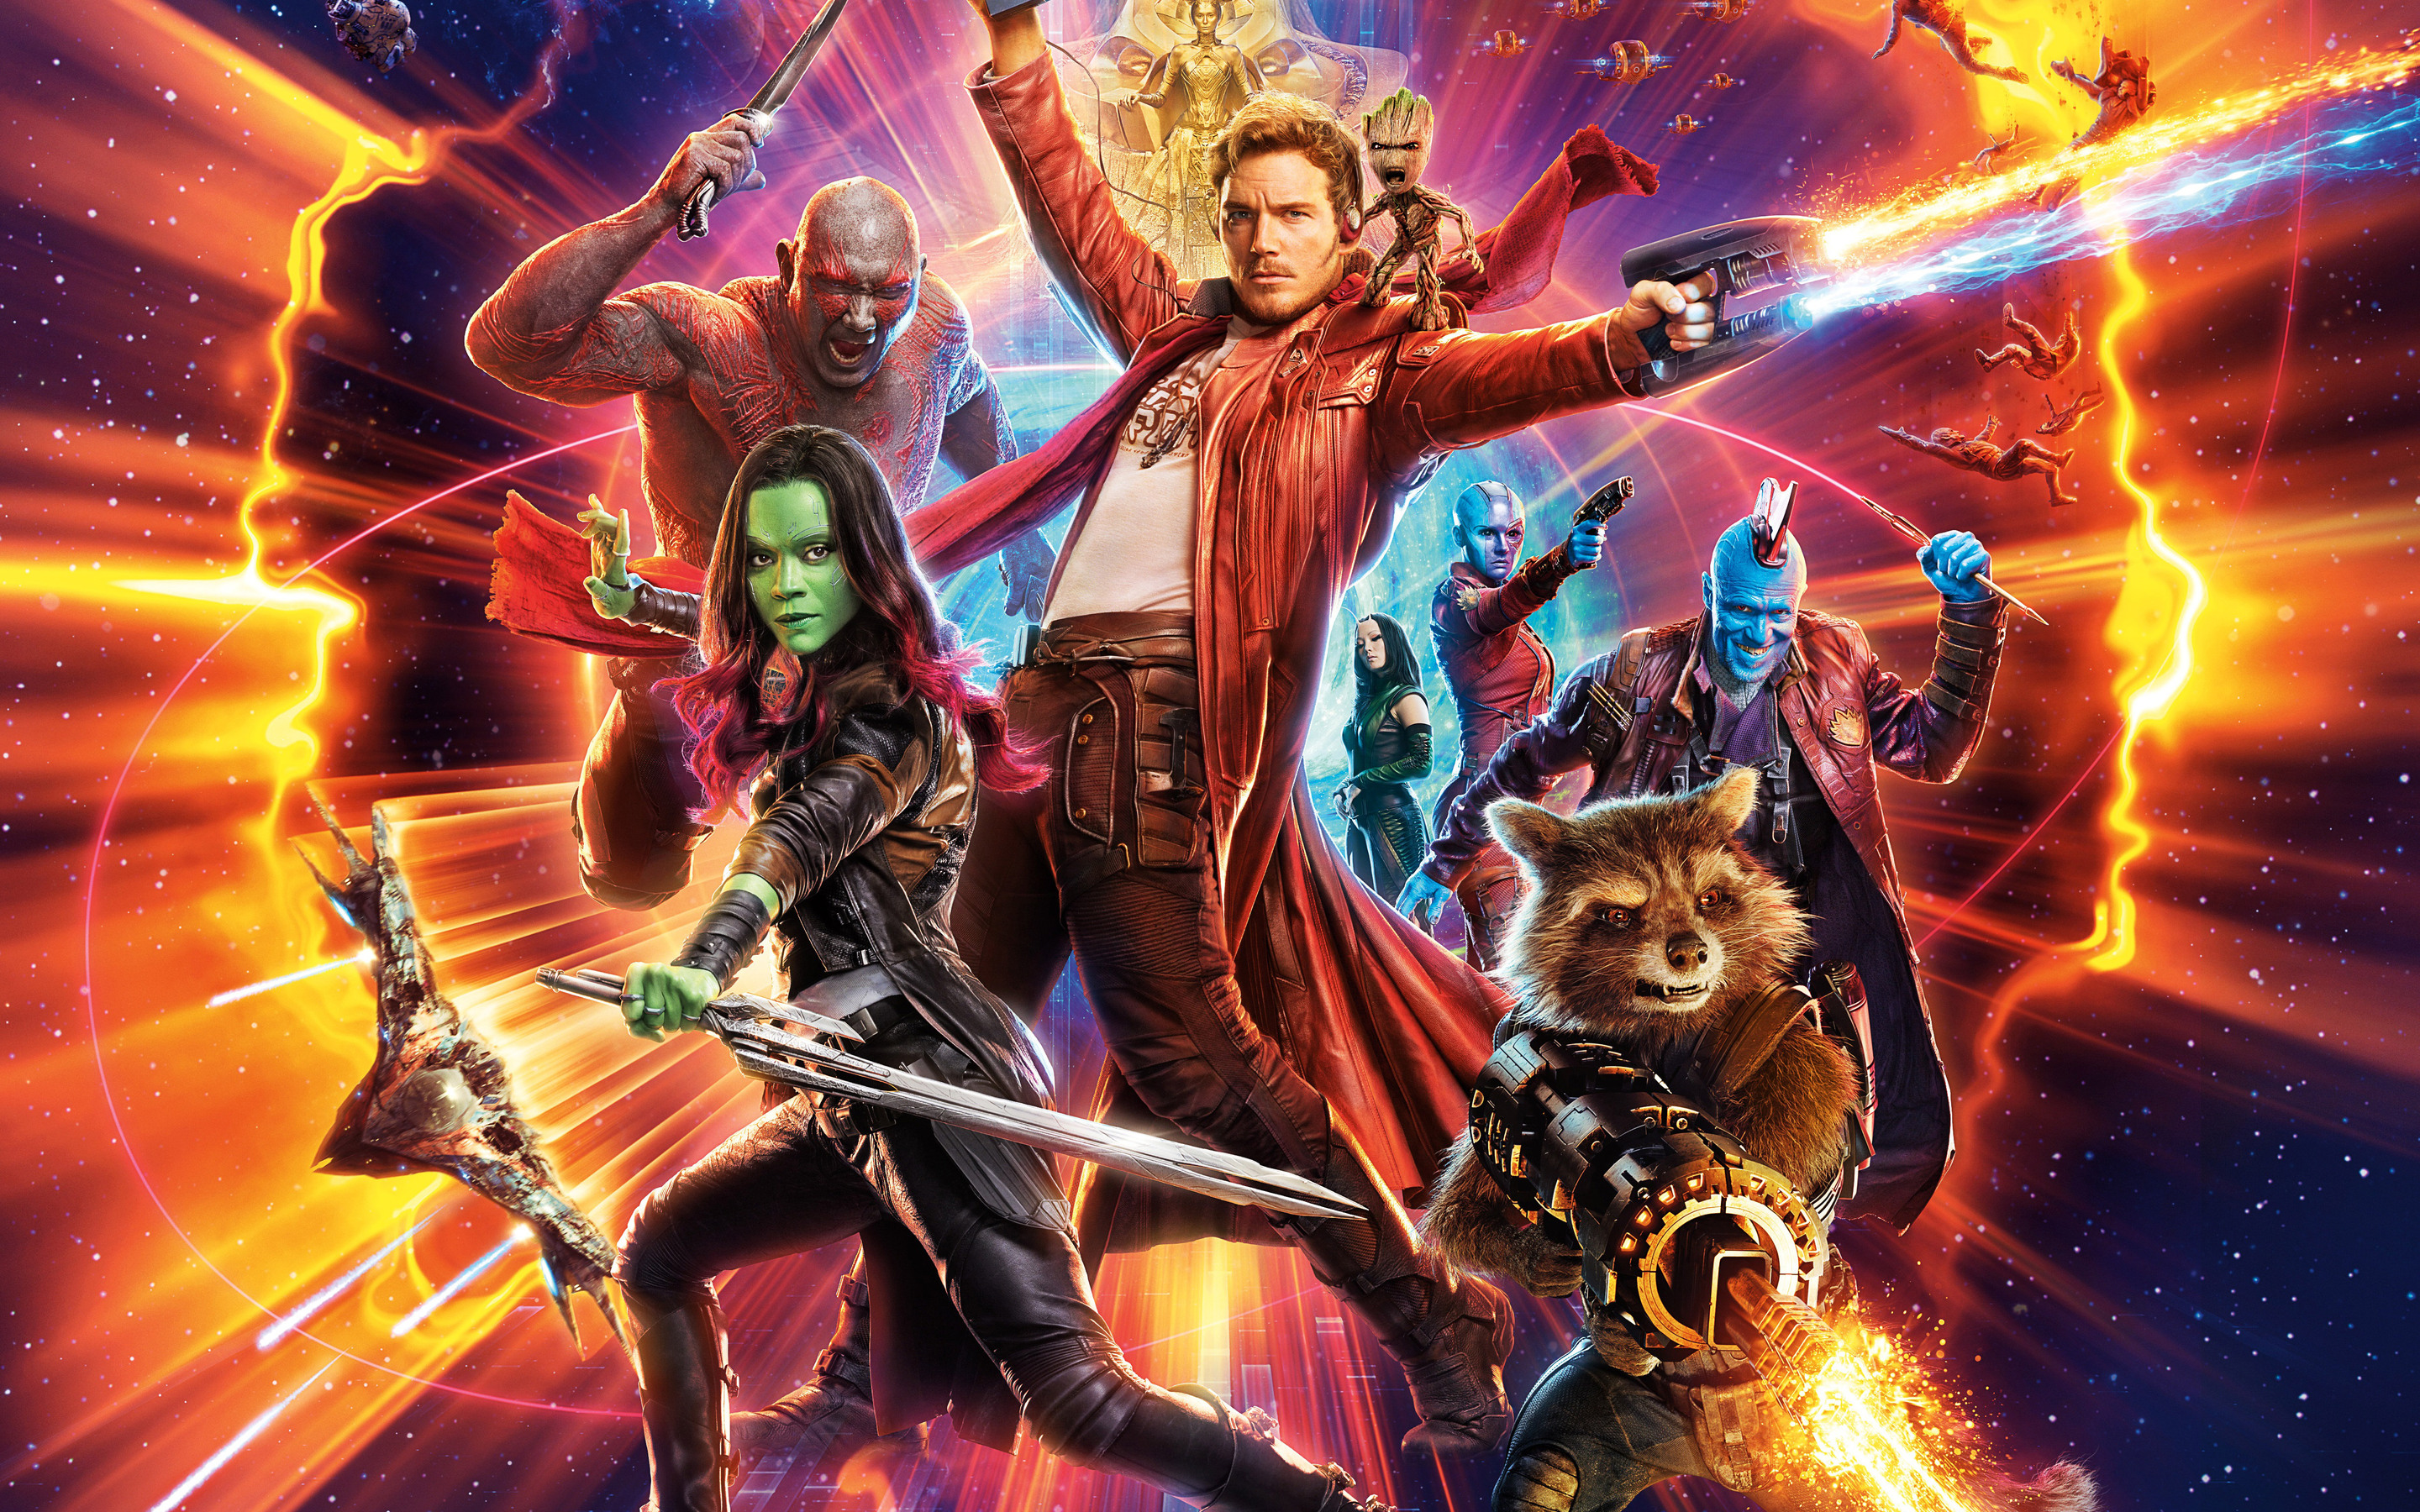 guardians of the galaxy vol 2 5k 4k hd qu 2880x1800 A Guide to Guardians of the Galaxy Vol. 2s New Characters